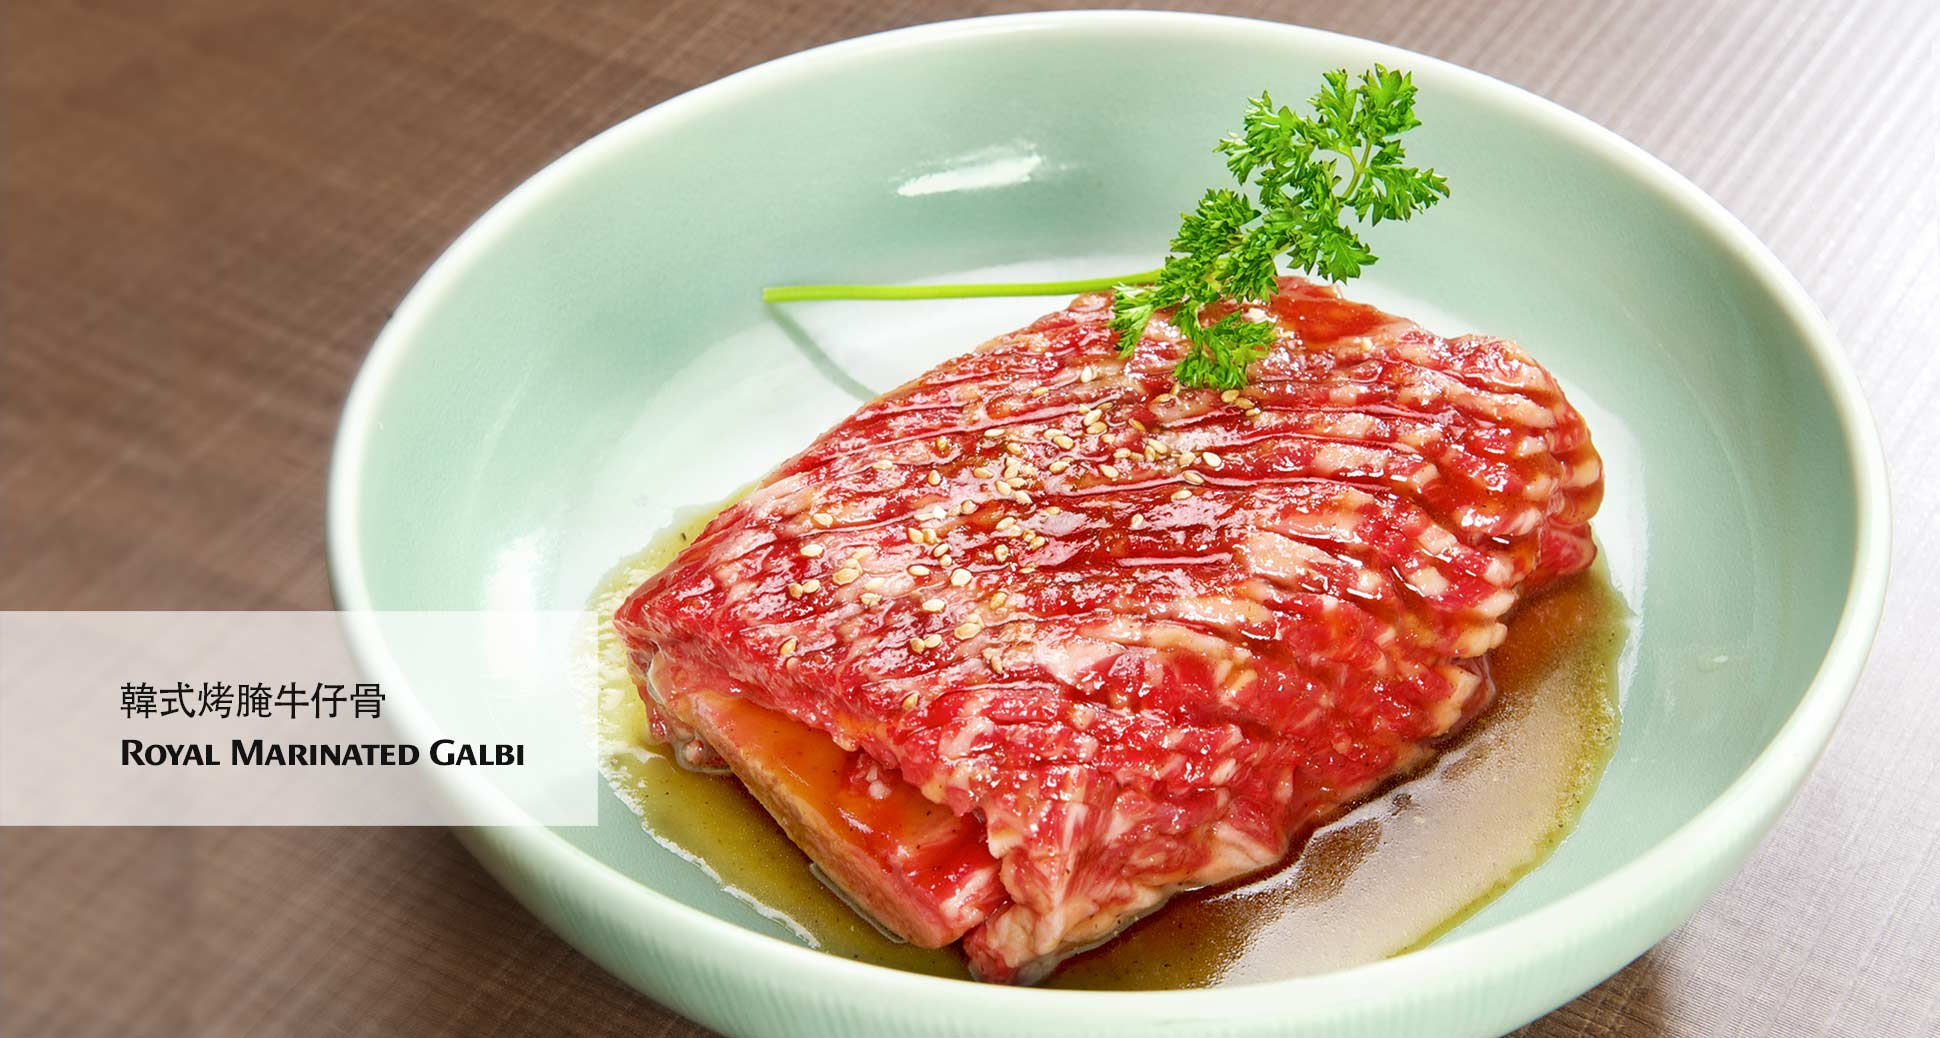 Come and enjoy this glorious Summer weather at sura korean bbq!